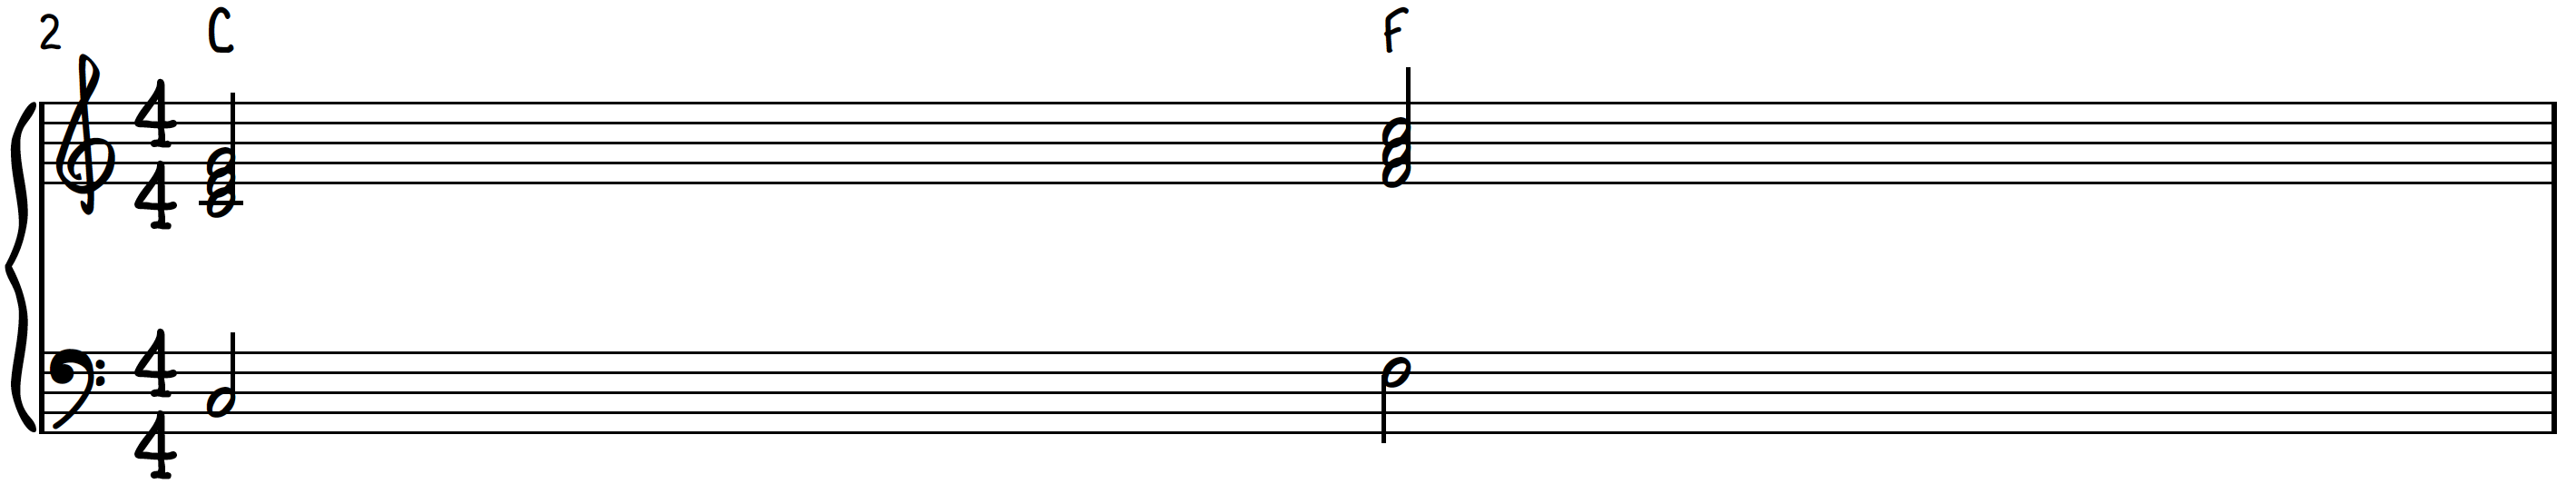 C Major to F Major chords on piano